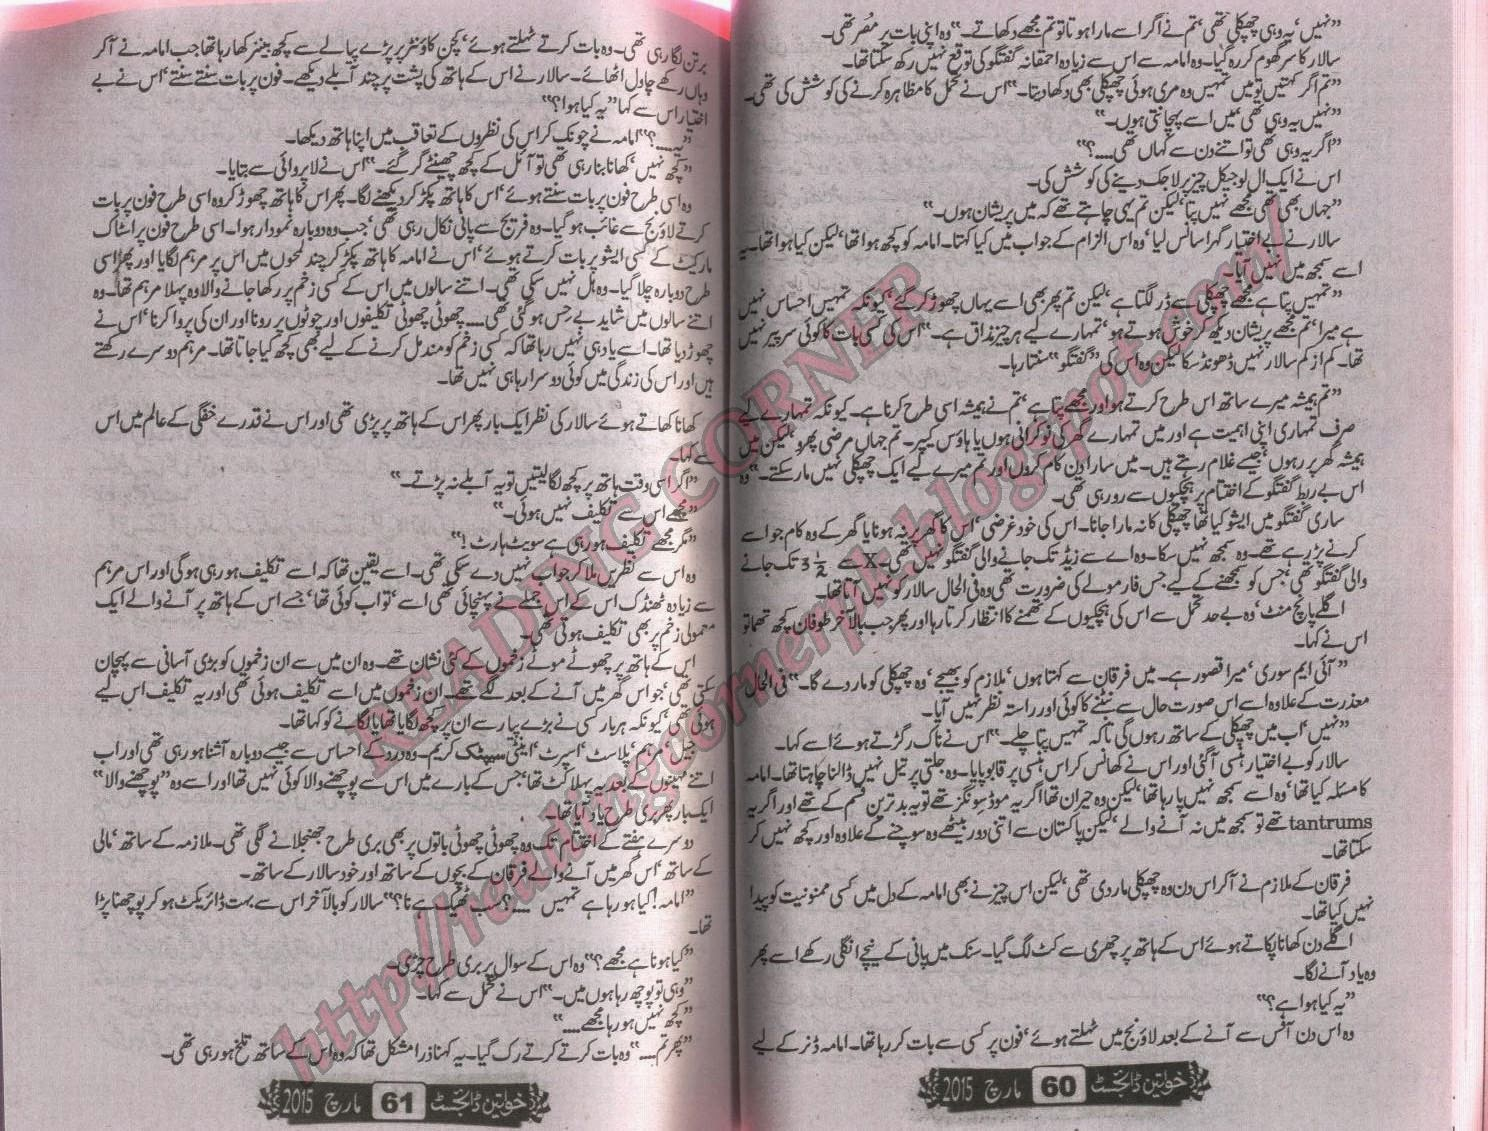 Kitab dost aab e hayat by umaira ahmed episode 5 online reading